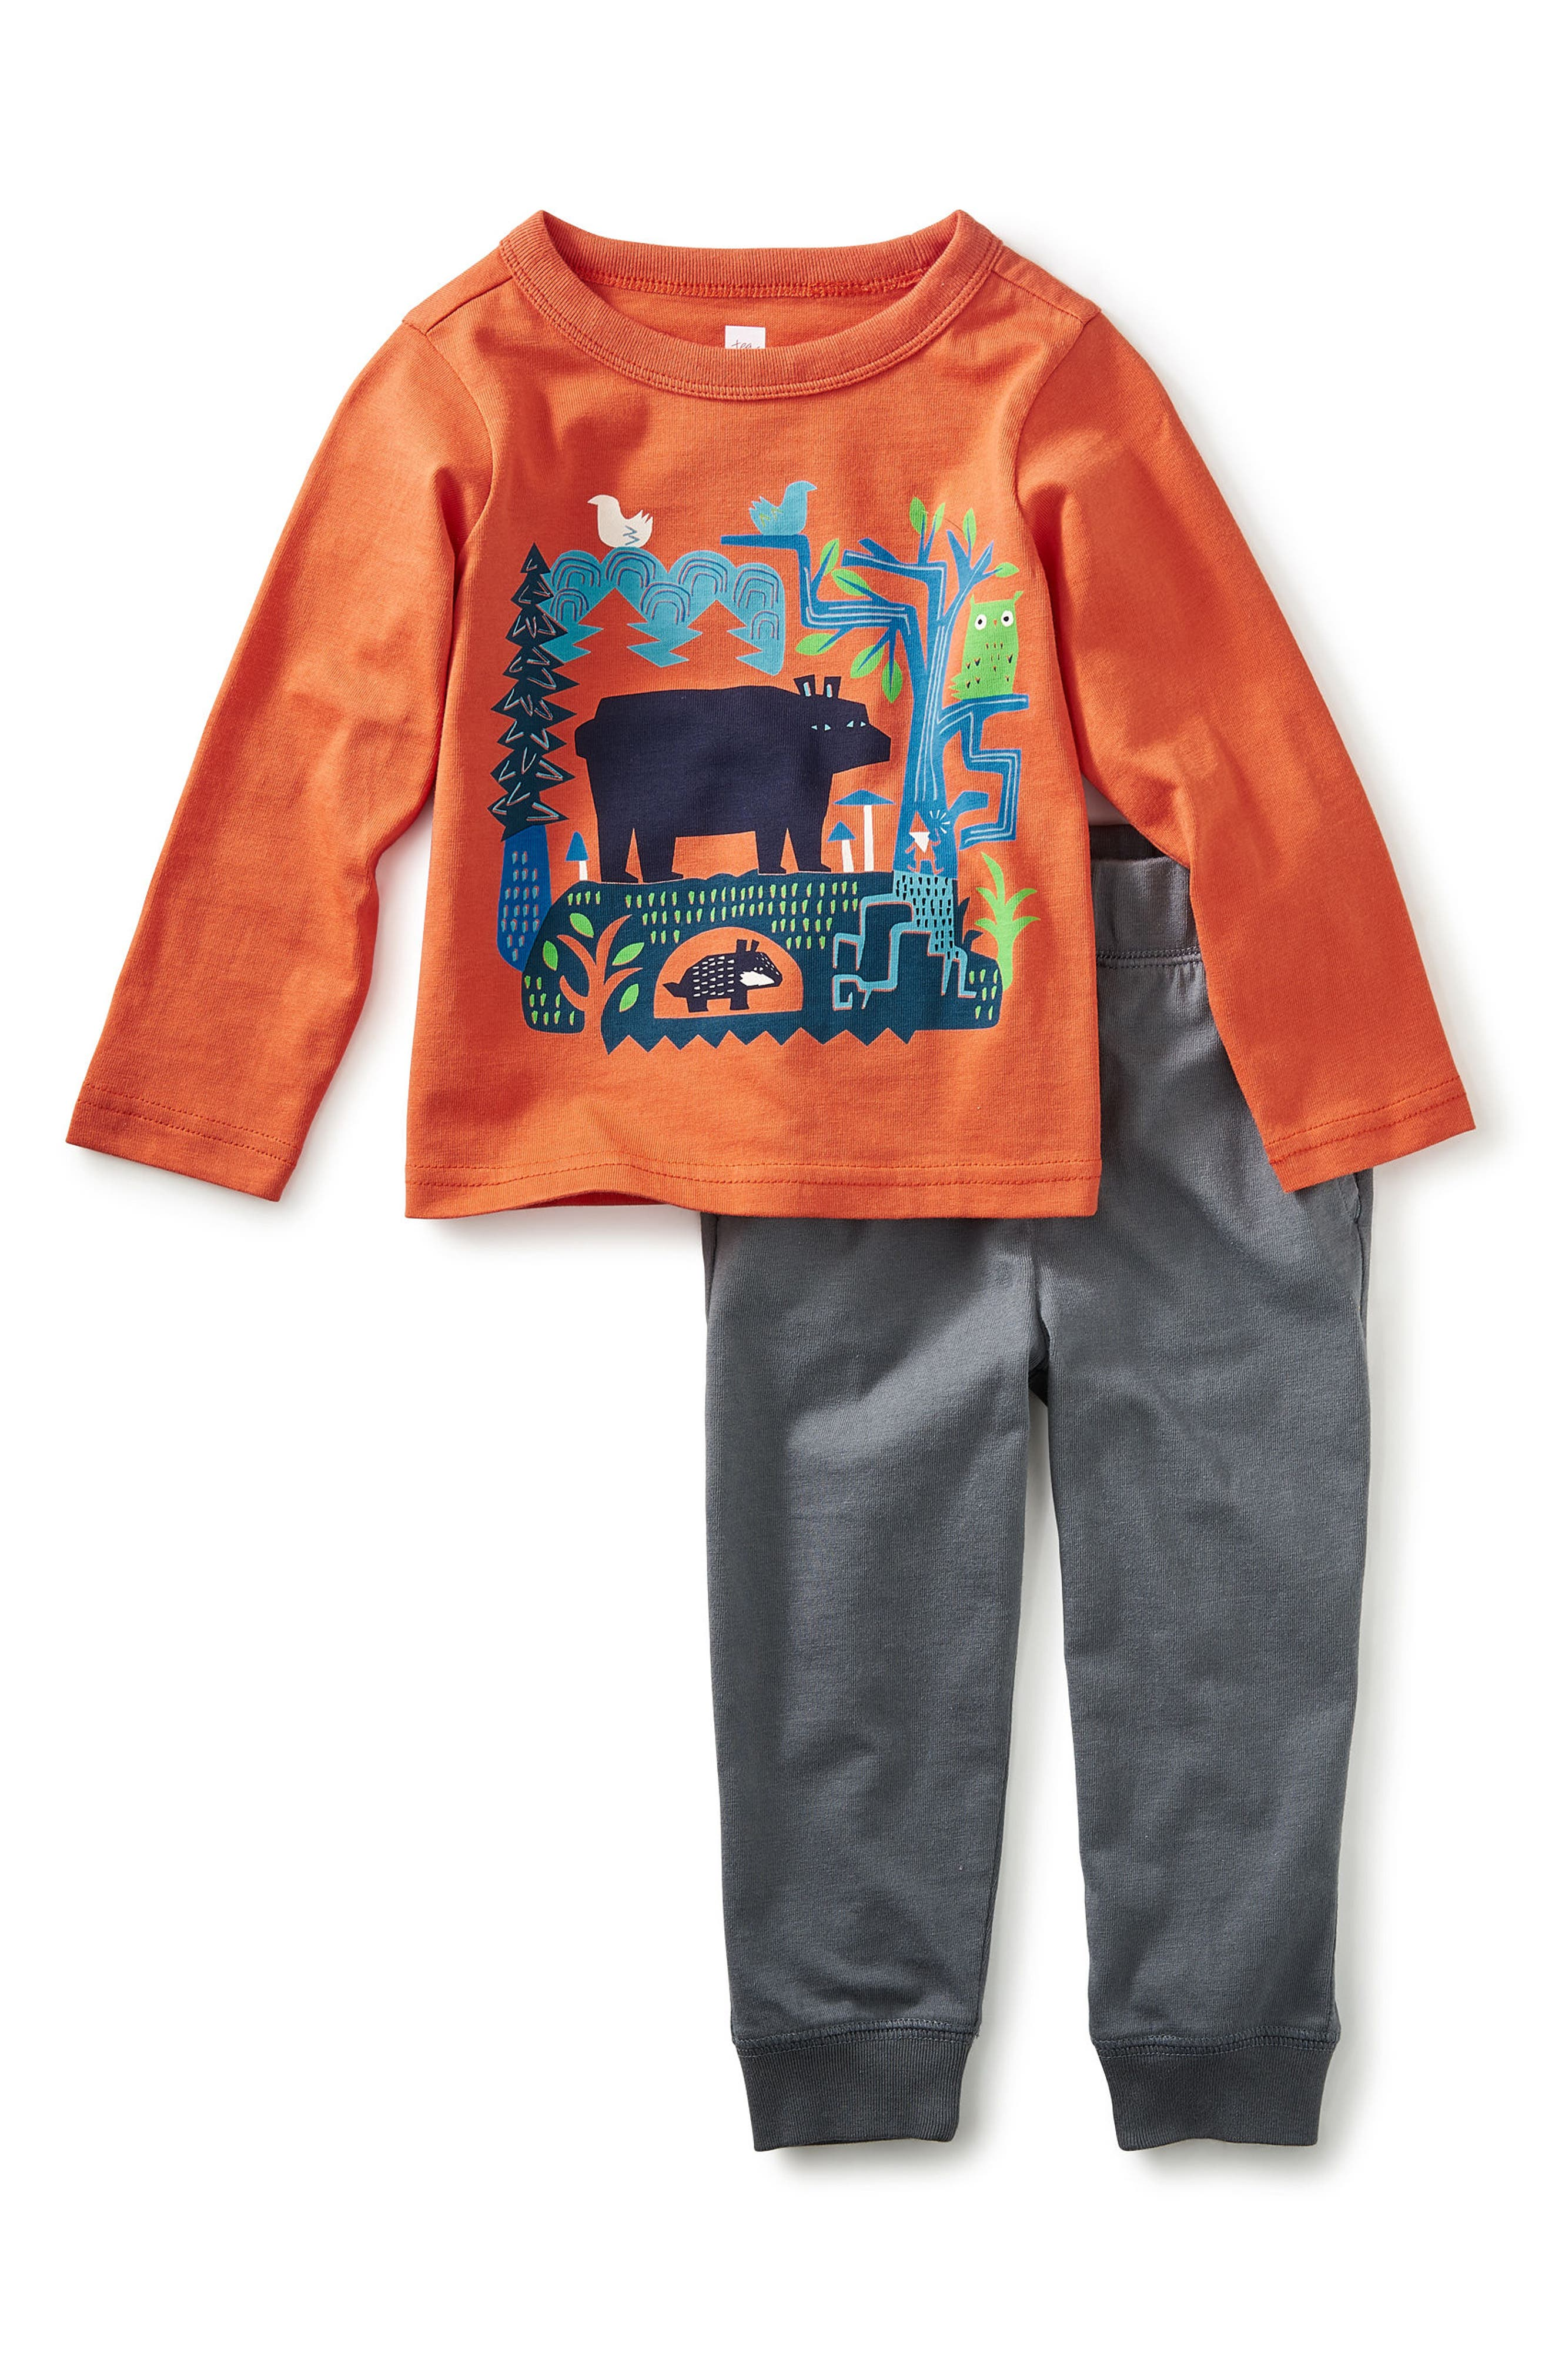 Alternate Image 1 Selected - Tea Collection Bear Tale Graphic T-Shirt & Sweatpants Set (Baby Boys & Toddler Boys)